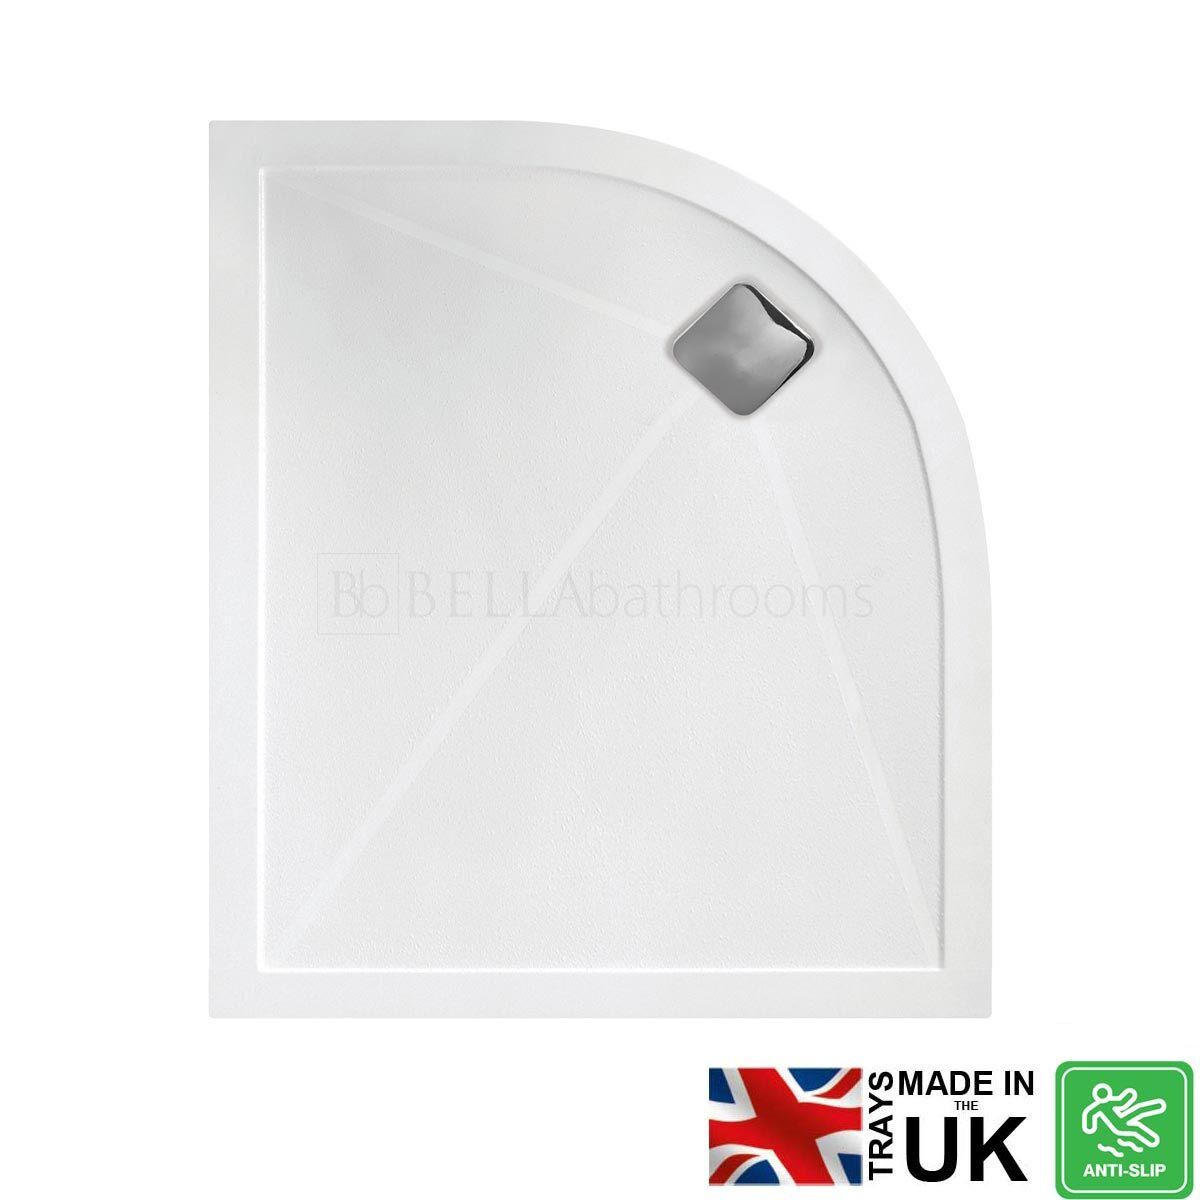 Bathrooms To Love Right Hand Offset Quadrant Anti-Slip Shower Tray with Waste 1200mm x 900mm